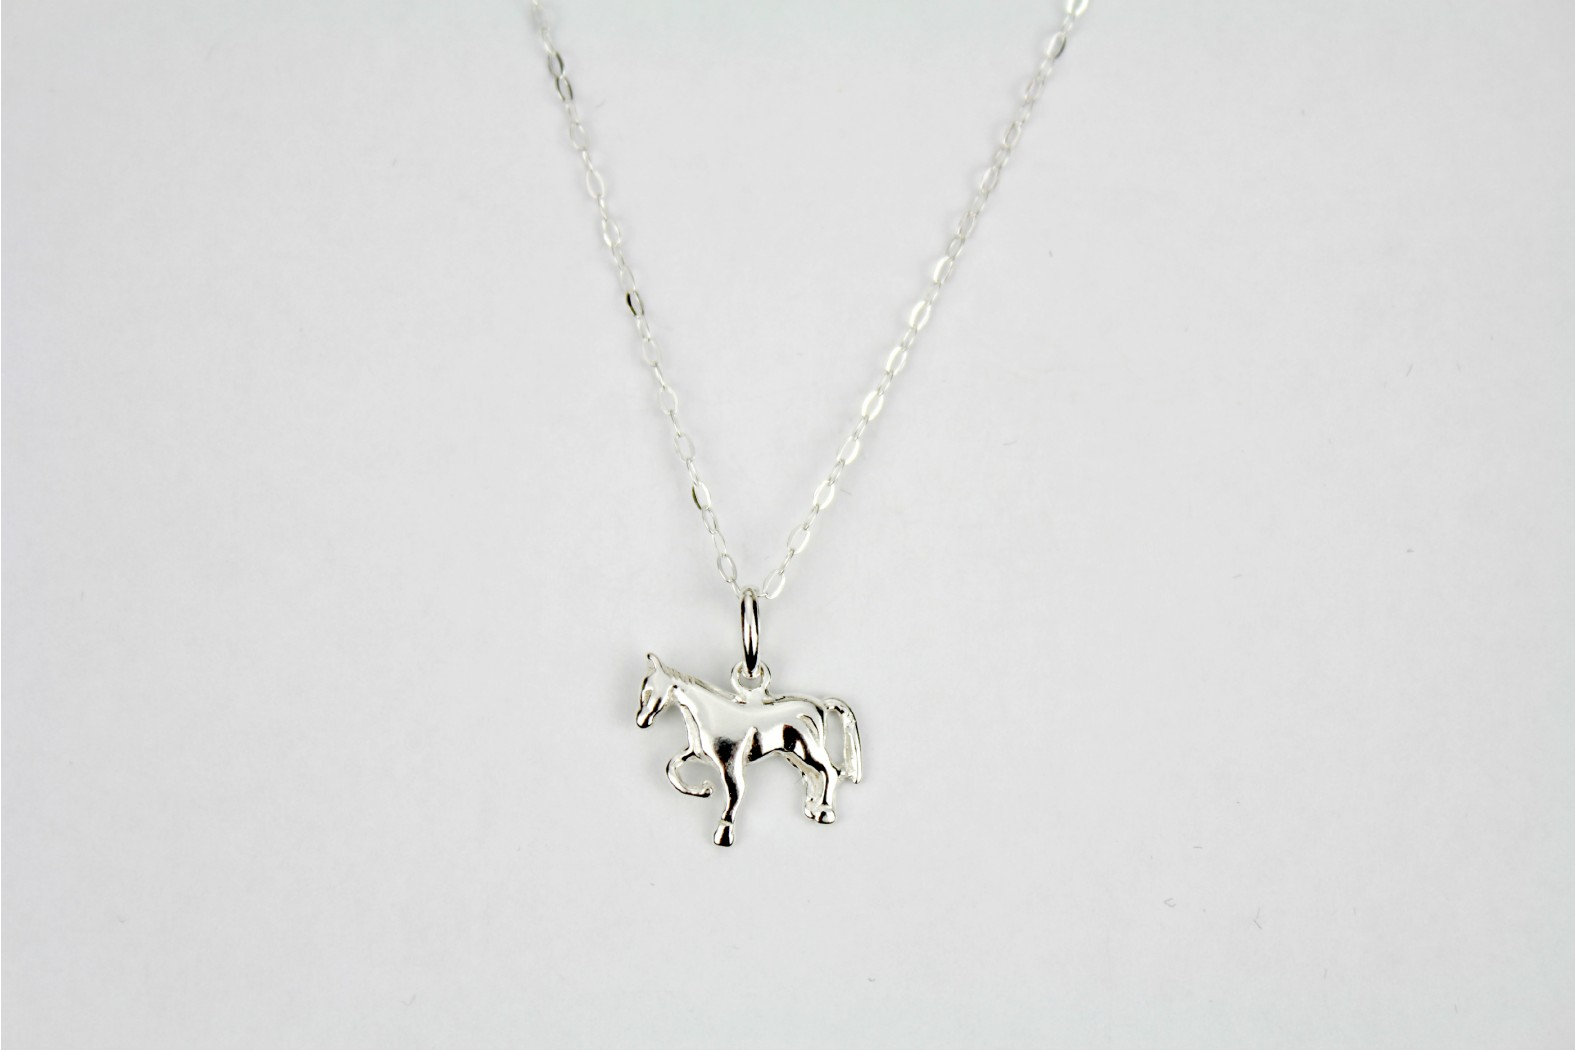 Charm style polished silver horse on 18ins 45cm lightweight link chain